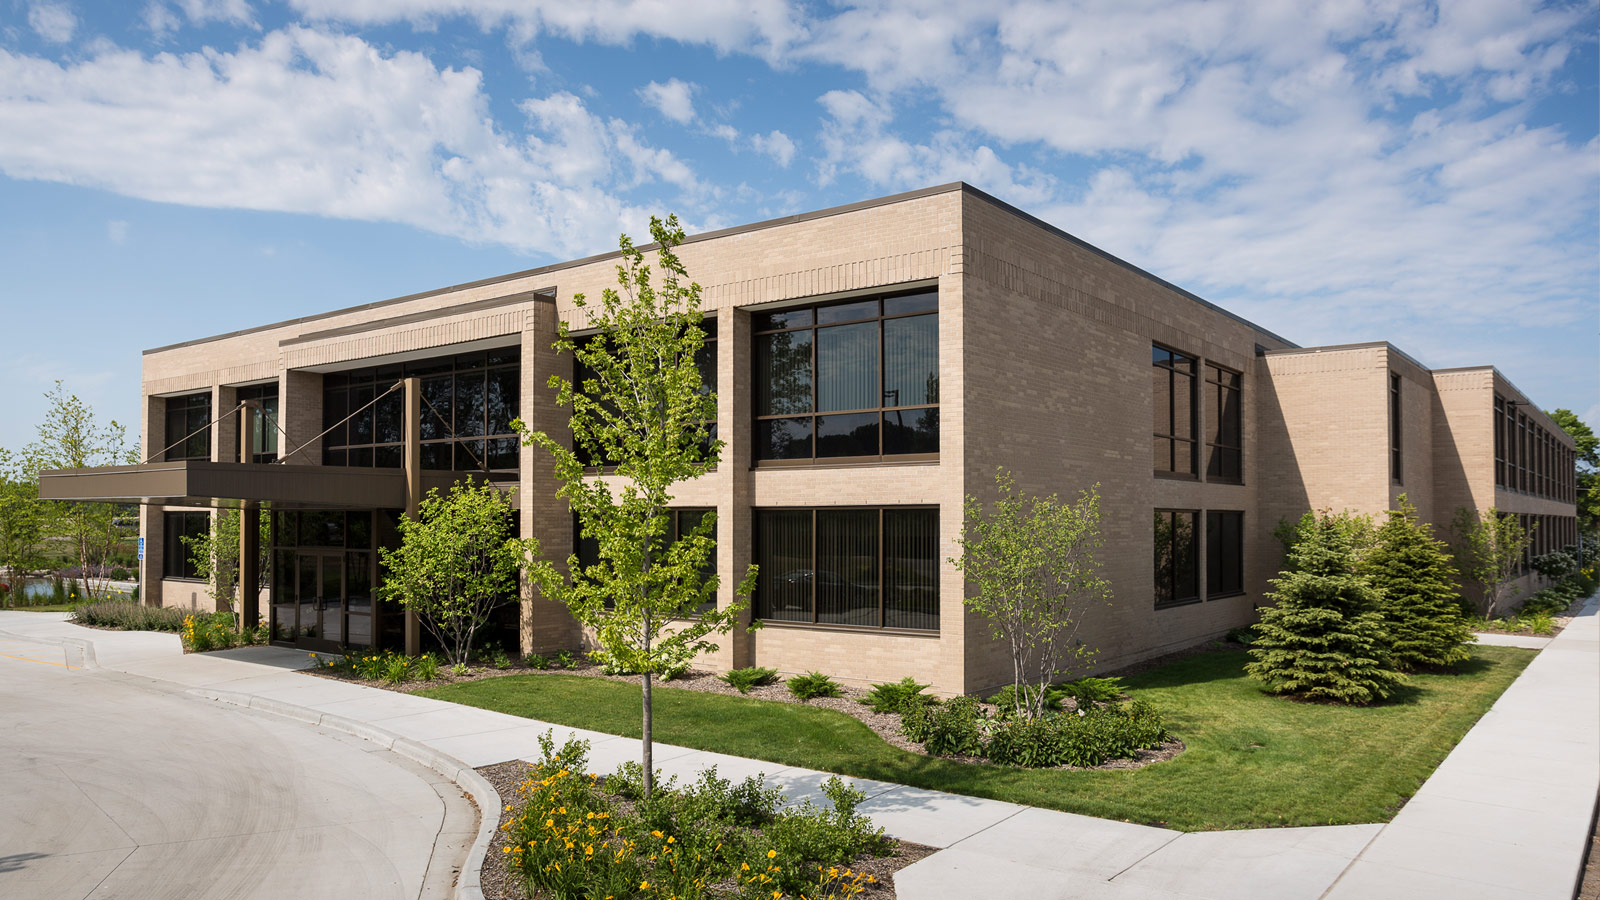 North Star Mutual Insurance Company Corporate Office Addition